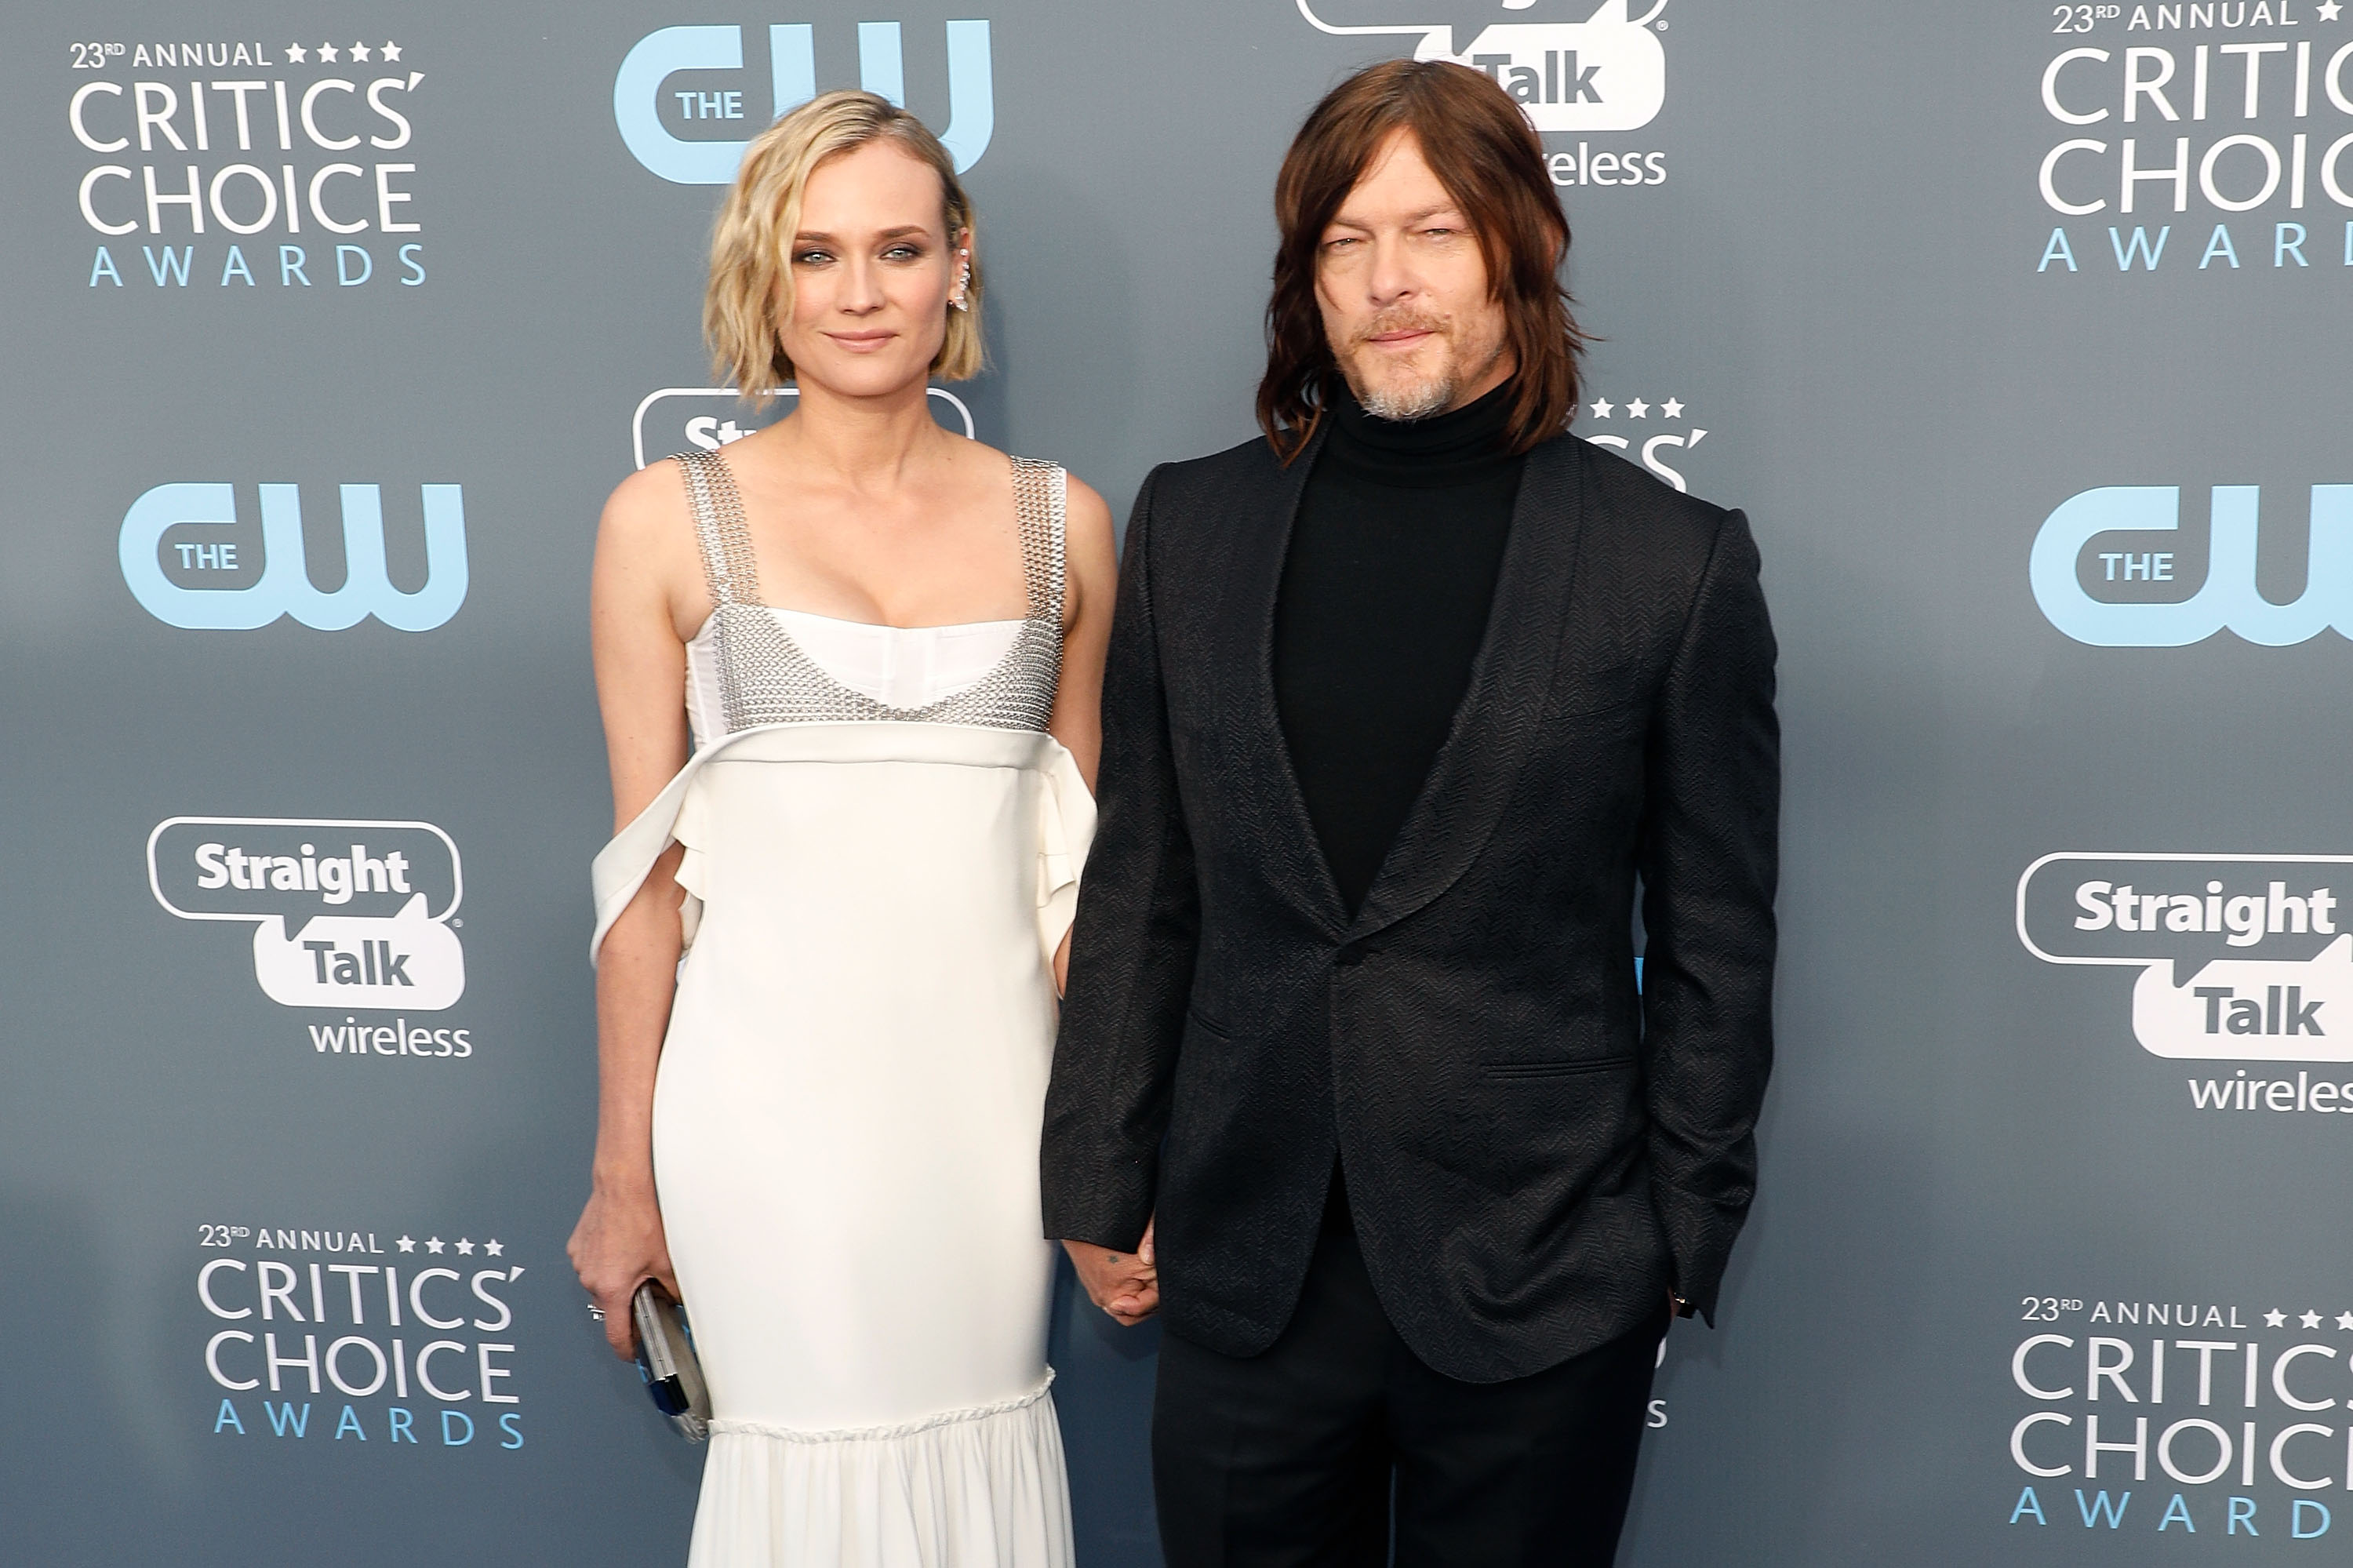 Norman Reedus and Diane Kruger attend the 23rd annual Critics' Choice Awards at the Barker Hangar on January 11, 2018, in Santa Monica, California.   Photo: Getty Images